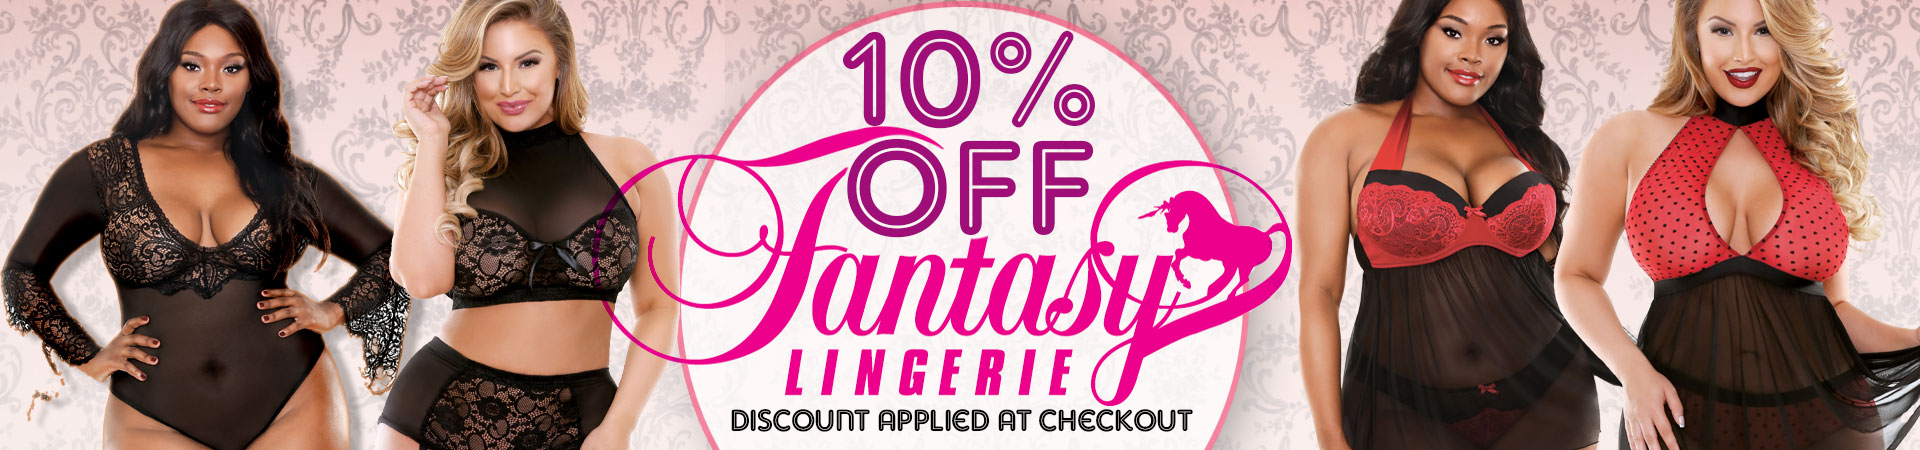 10% Off Fantasy Lingerie While Supplies Last!